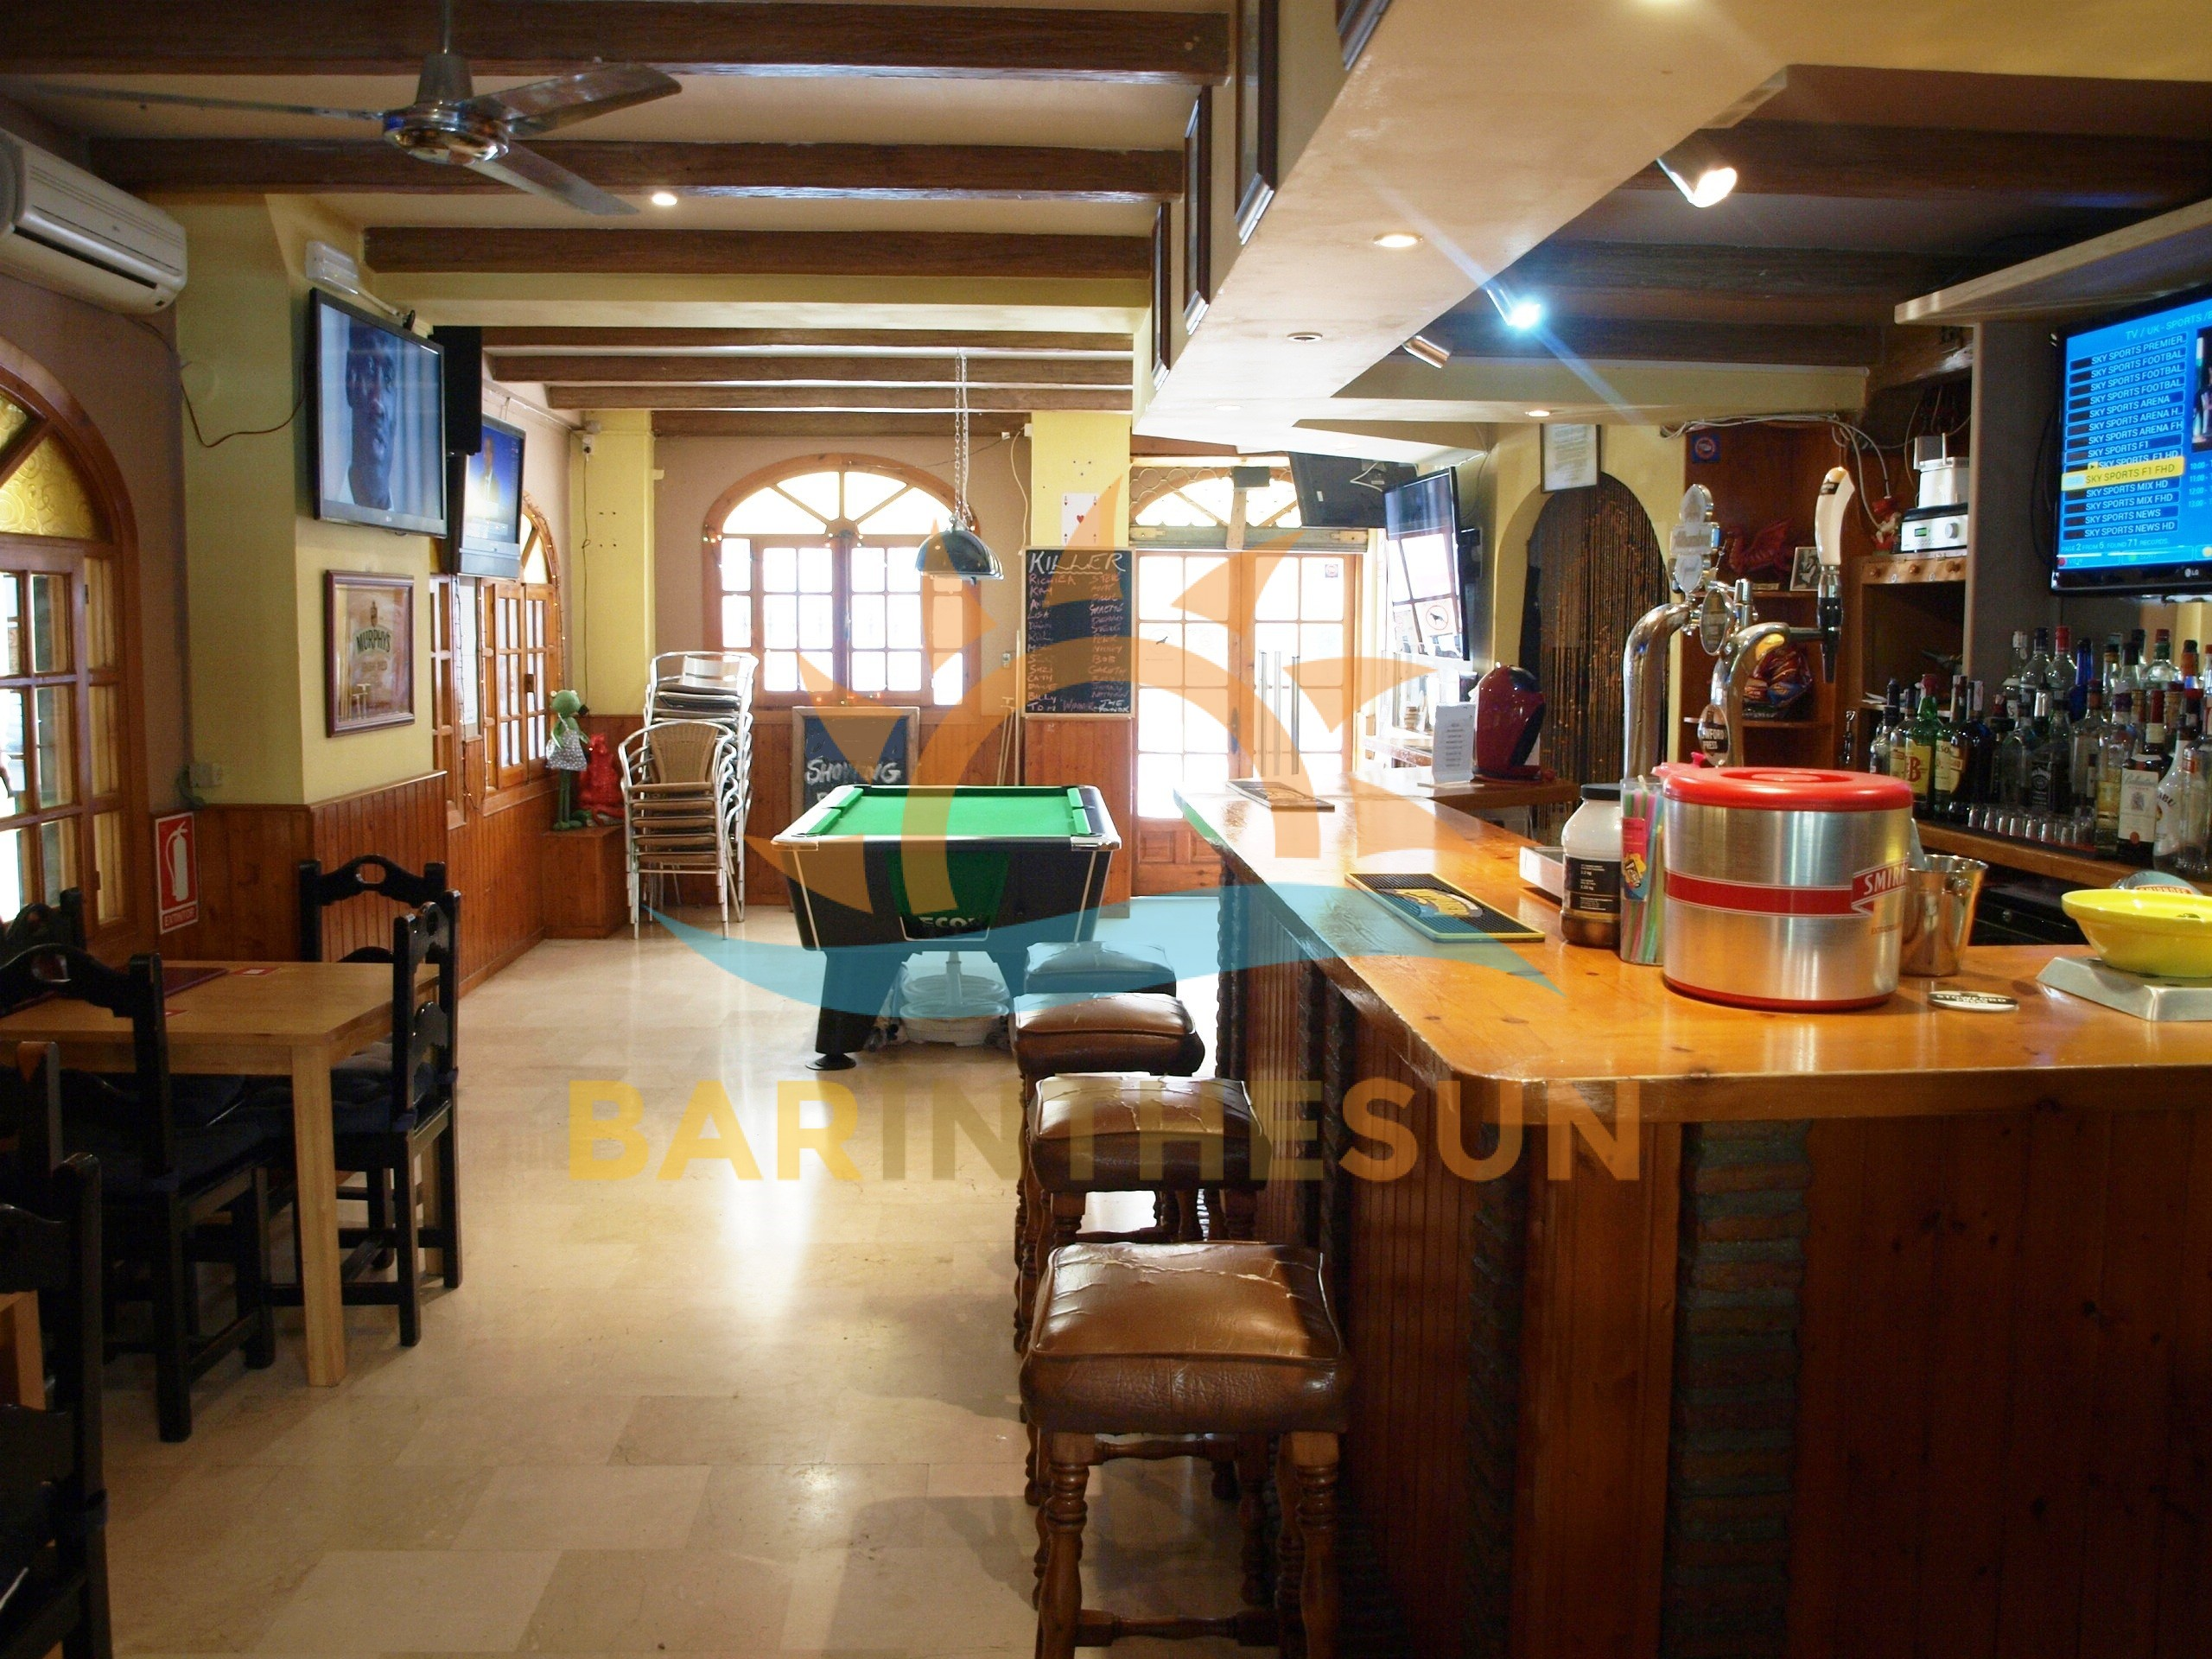 Long Established Cafe Sports Bar For Sale in Fuengirola on The Costa del Sol